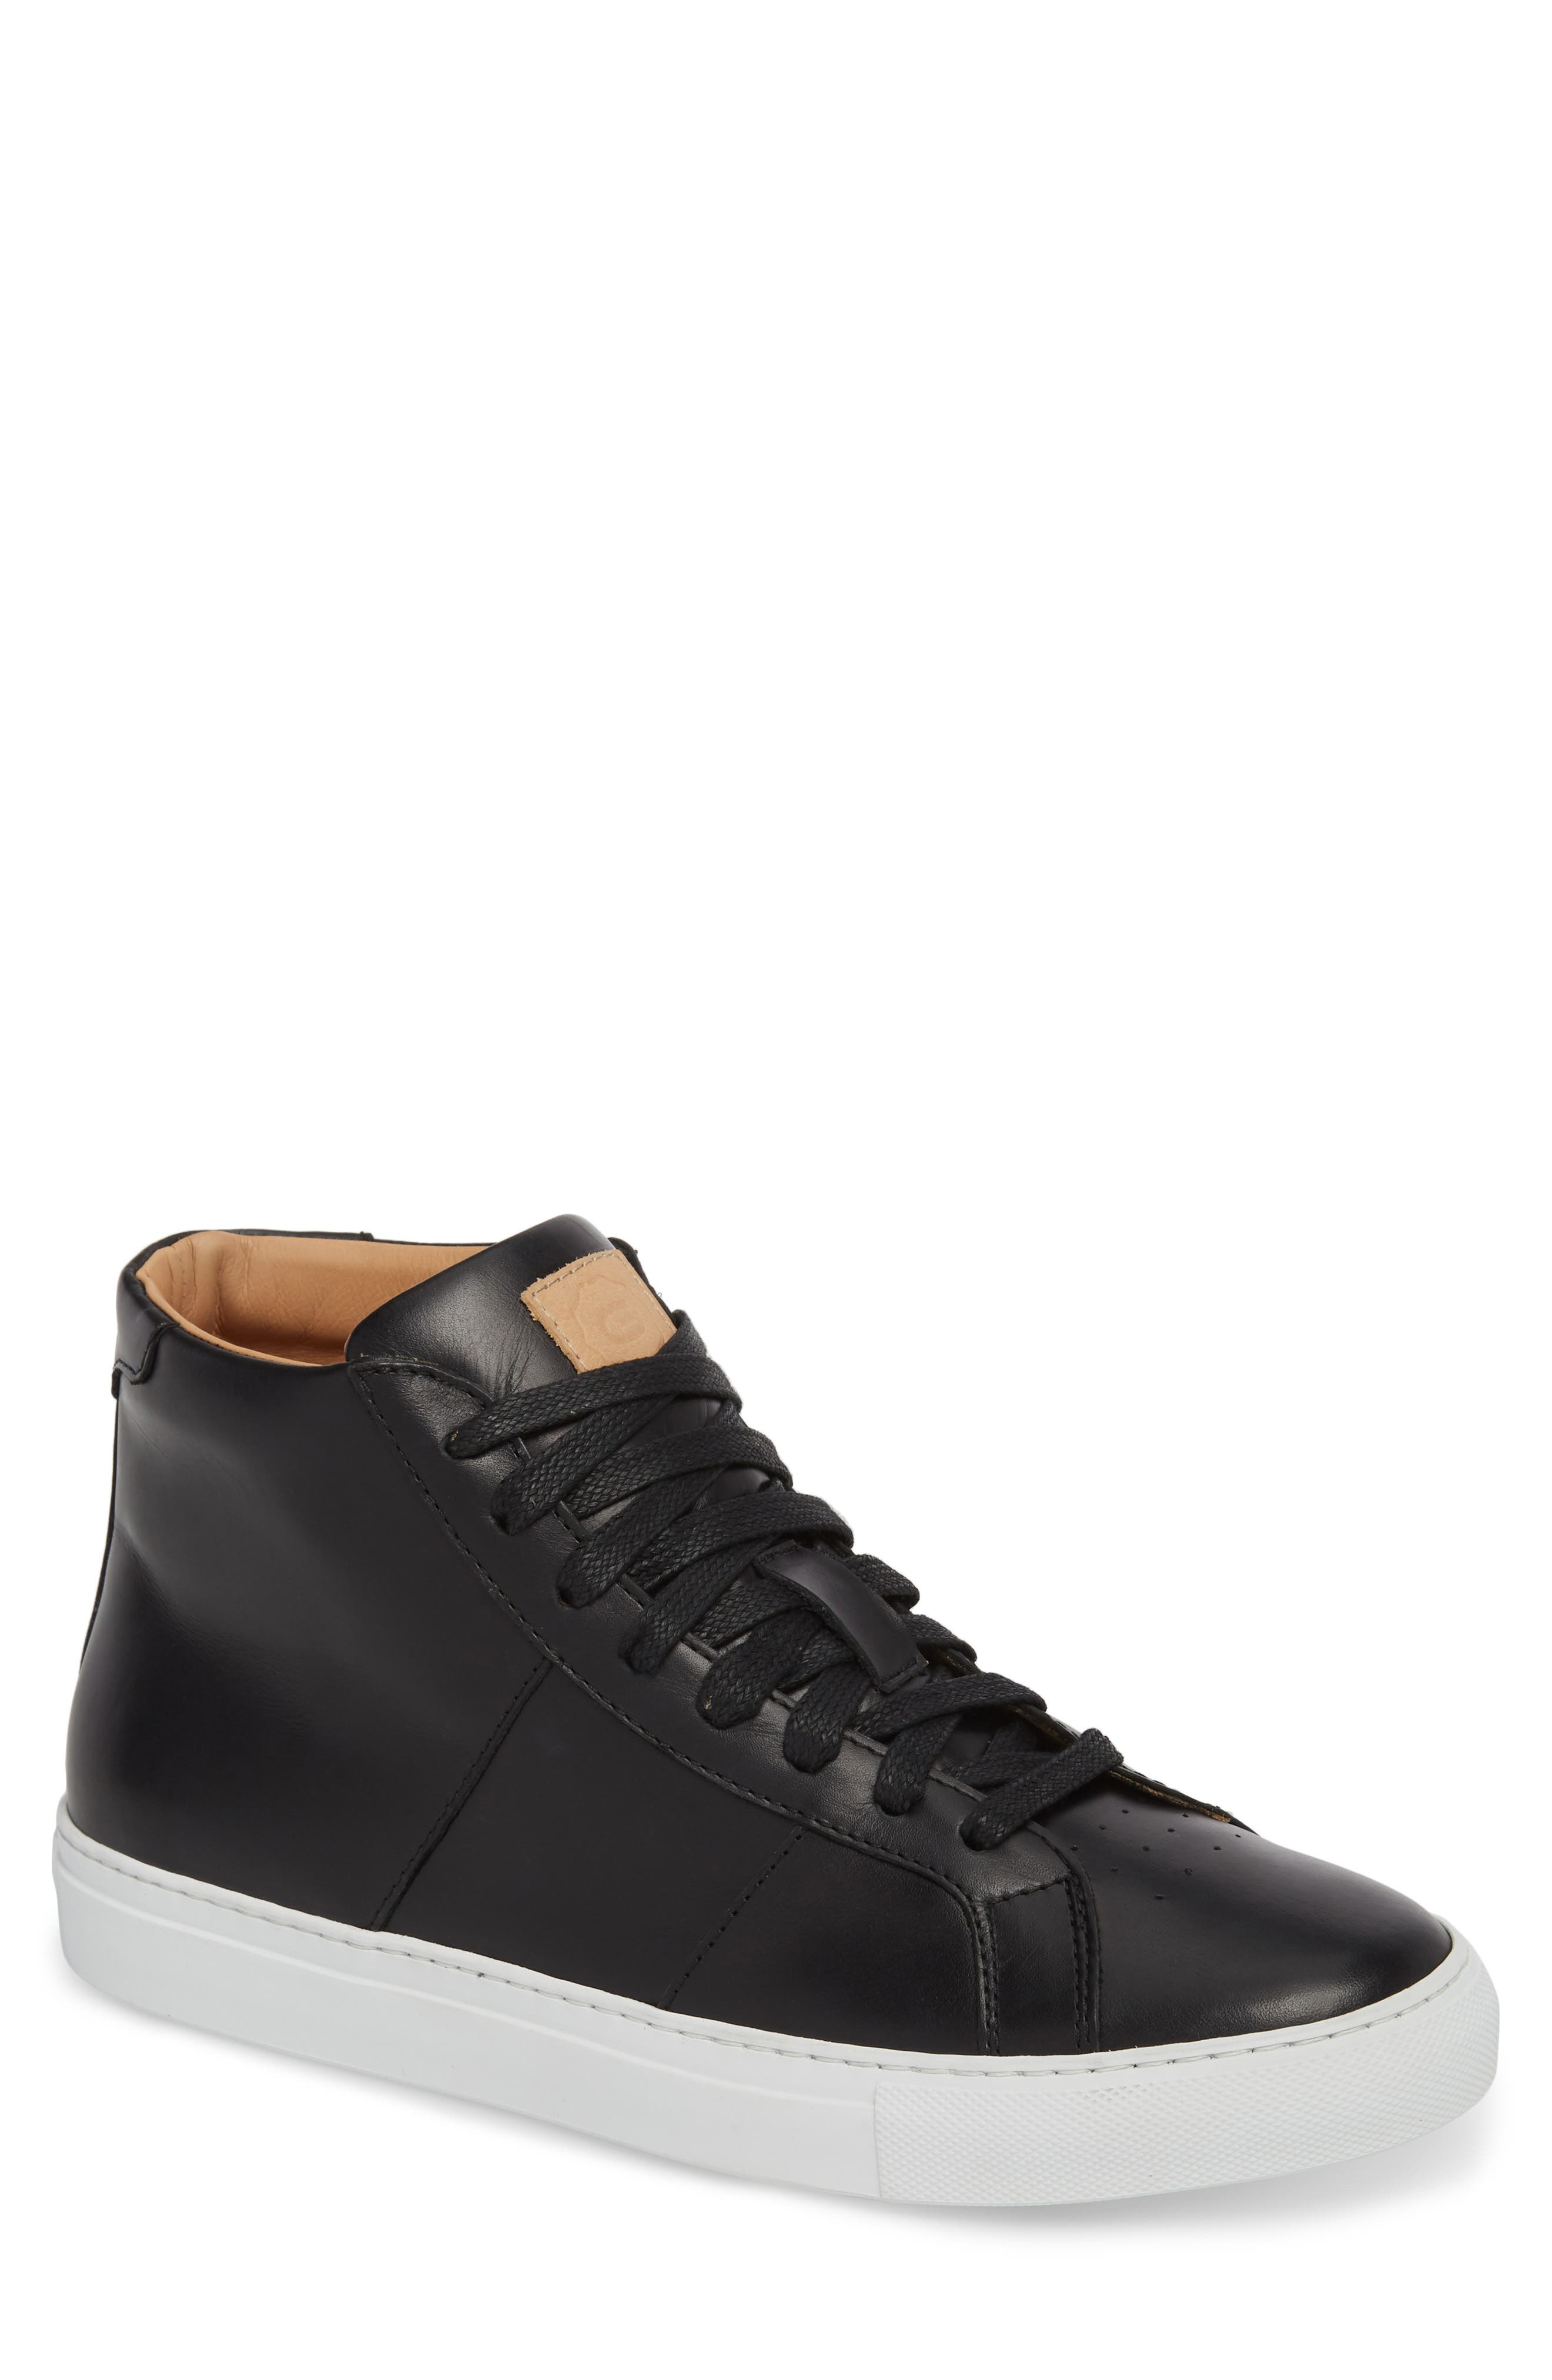 Royale High Top Sneaker,                             Main thumbnail 1, color,                             001